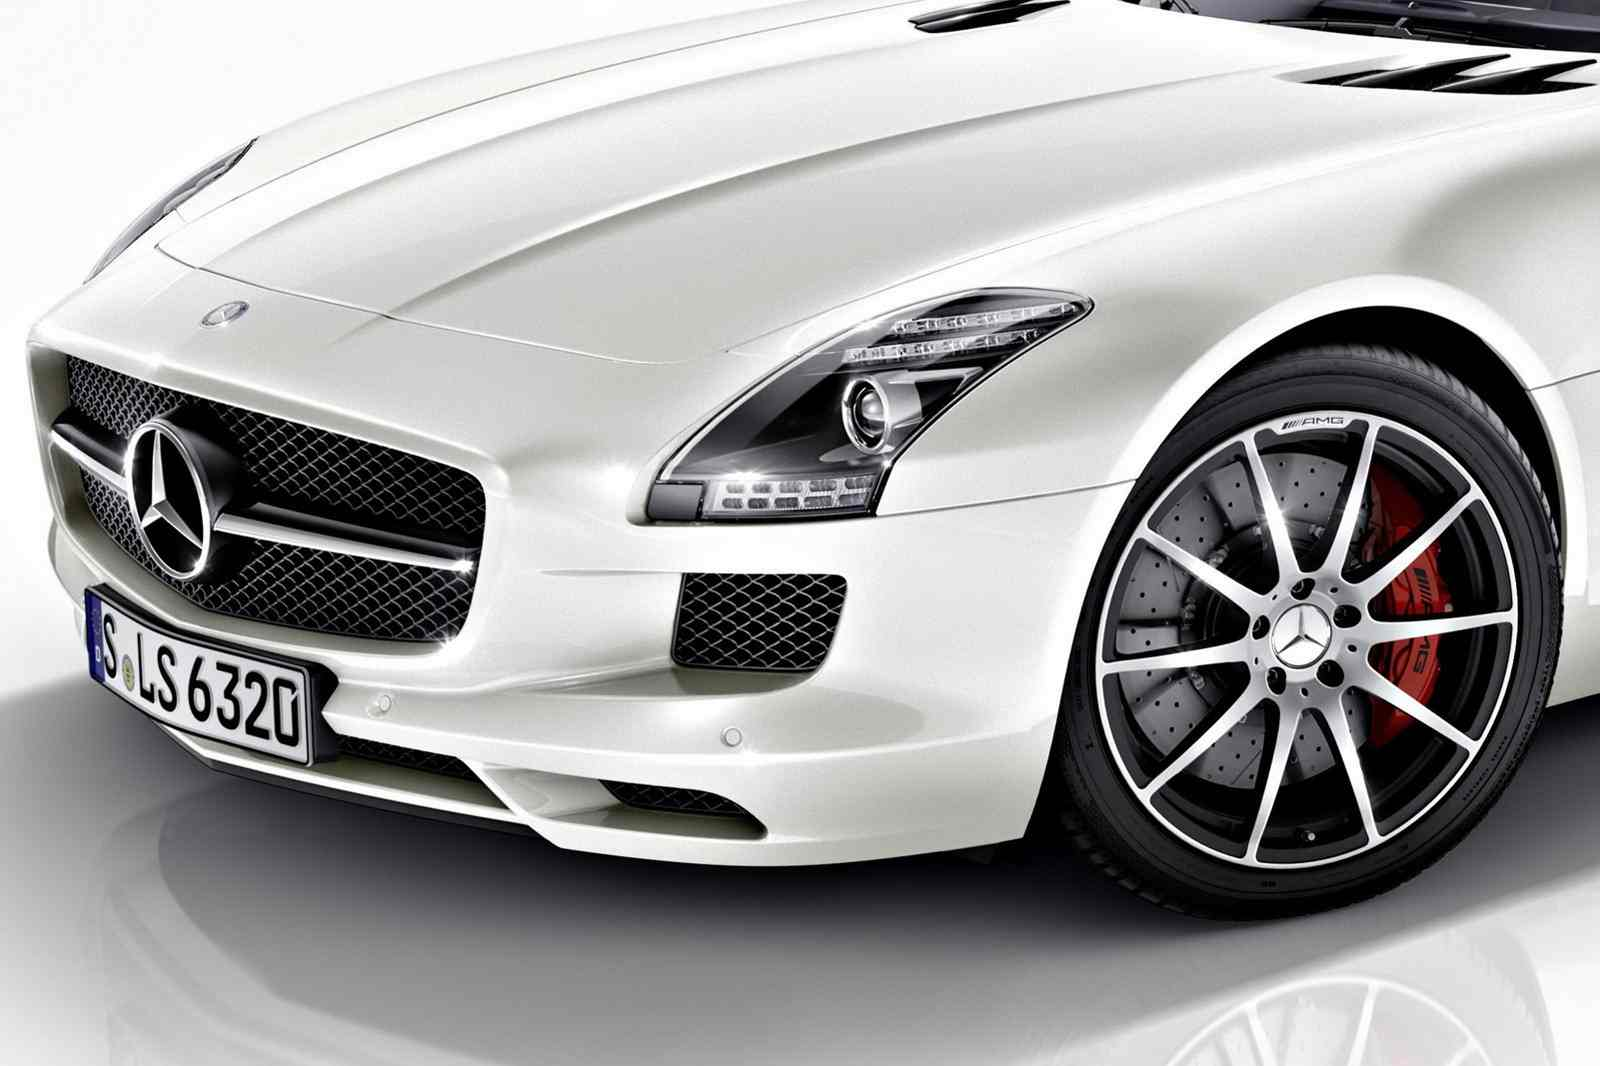 mercedes benz sls amg video download with 593 2013 Mercedes Benz Sls Amg Gt 11 on Most Viewed furthermore Mercedes Background 23531 in addition 593 2013 Mercedes Benz Sls Amg Gt 11 furthermore 1030519 besides Burj Al Arab Wallpapers.